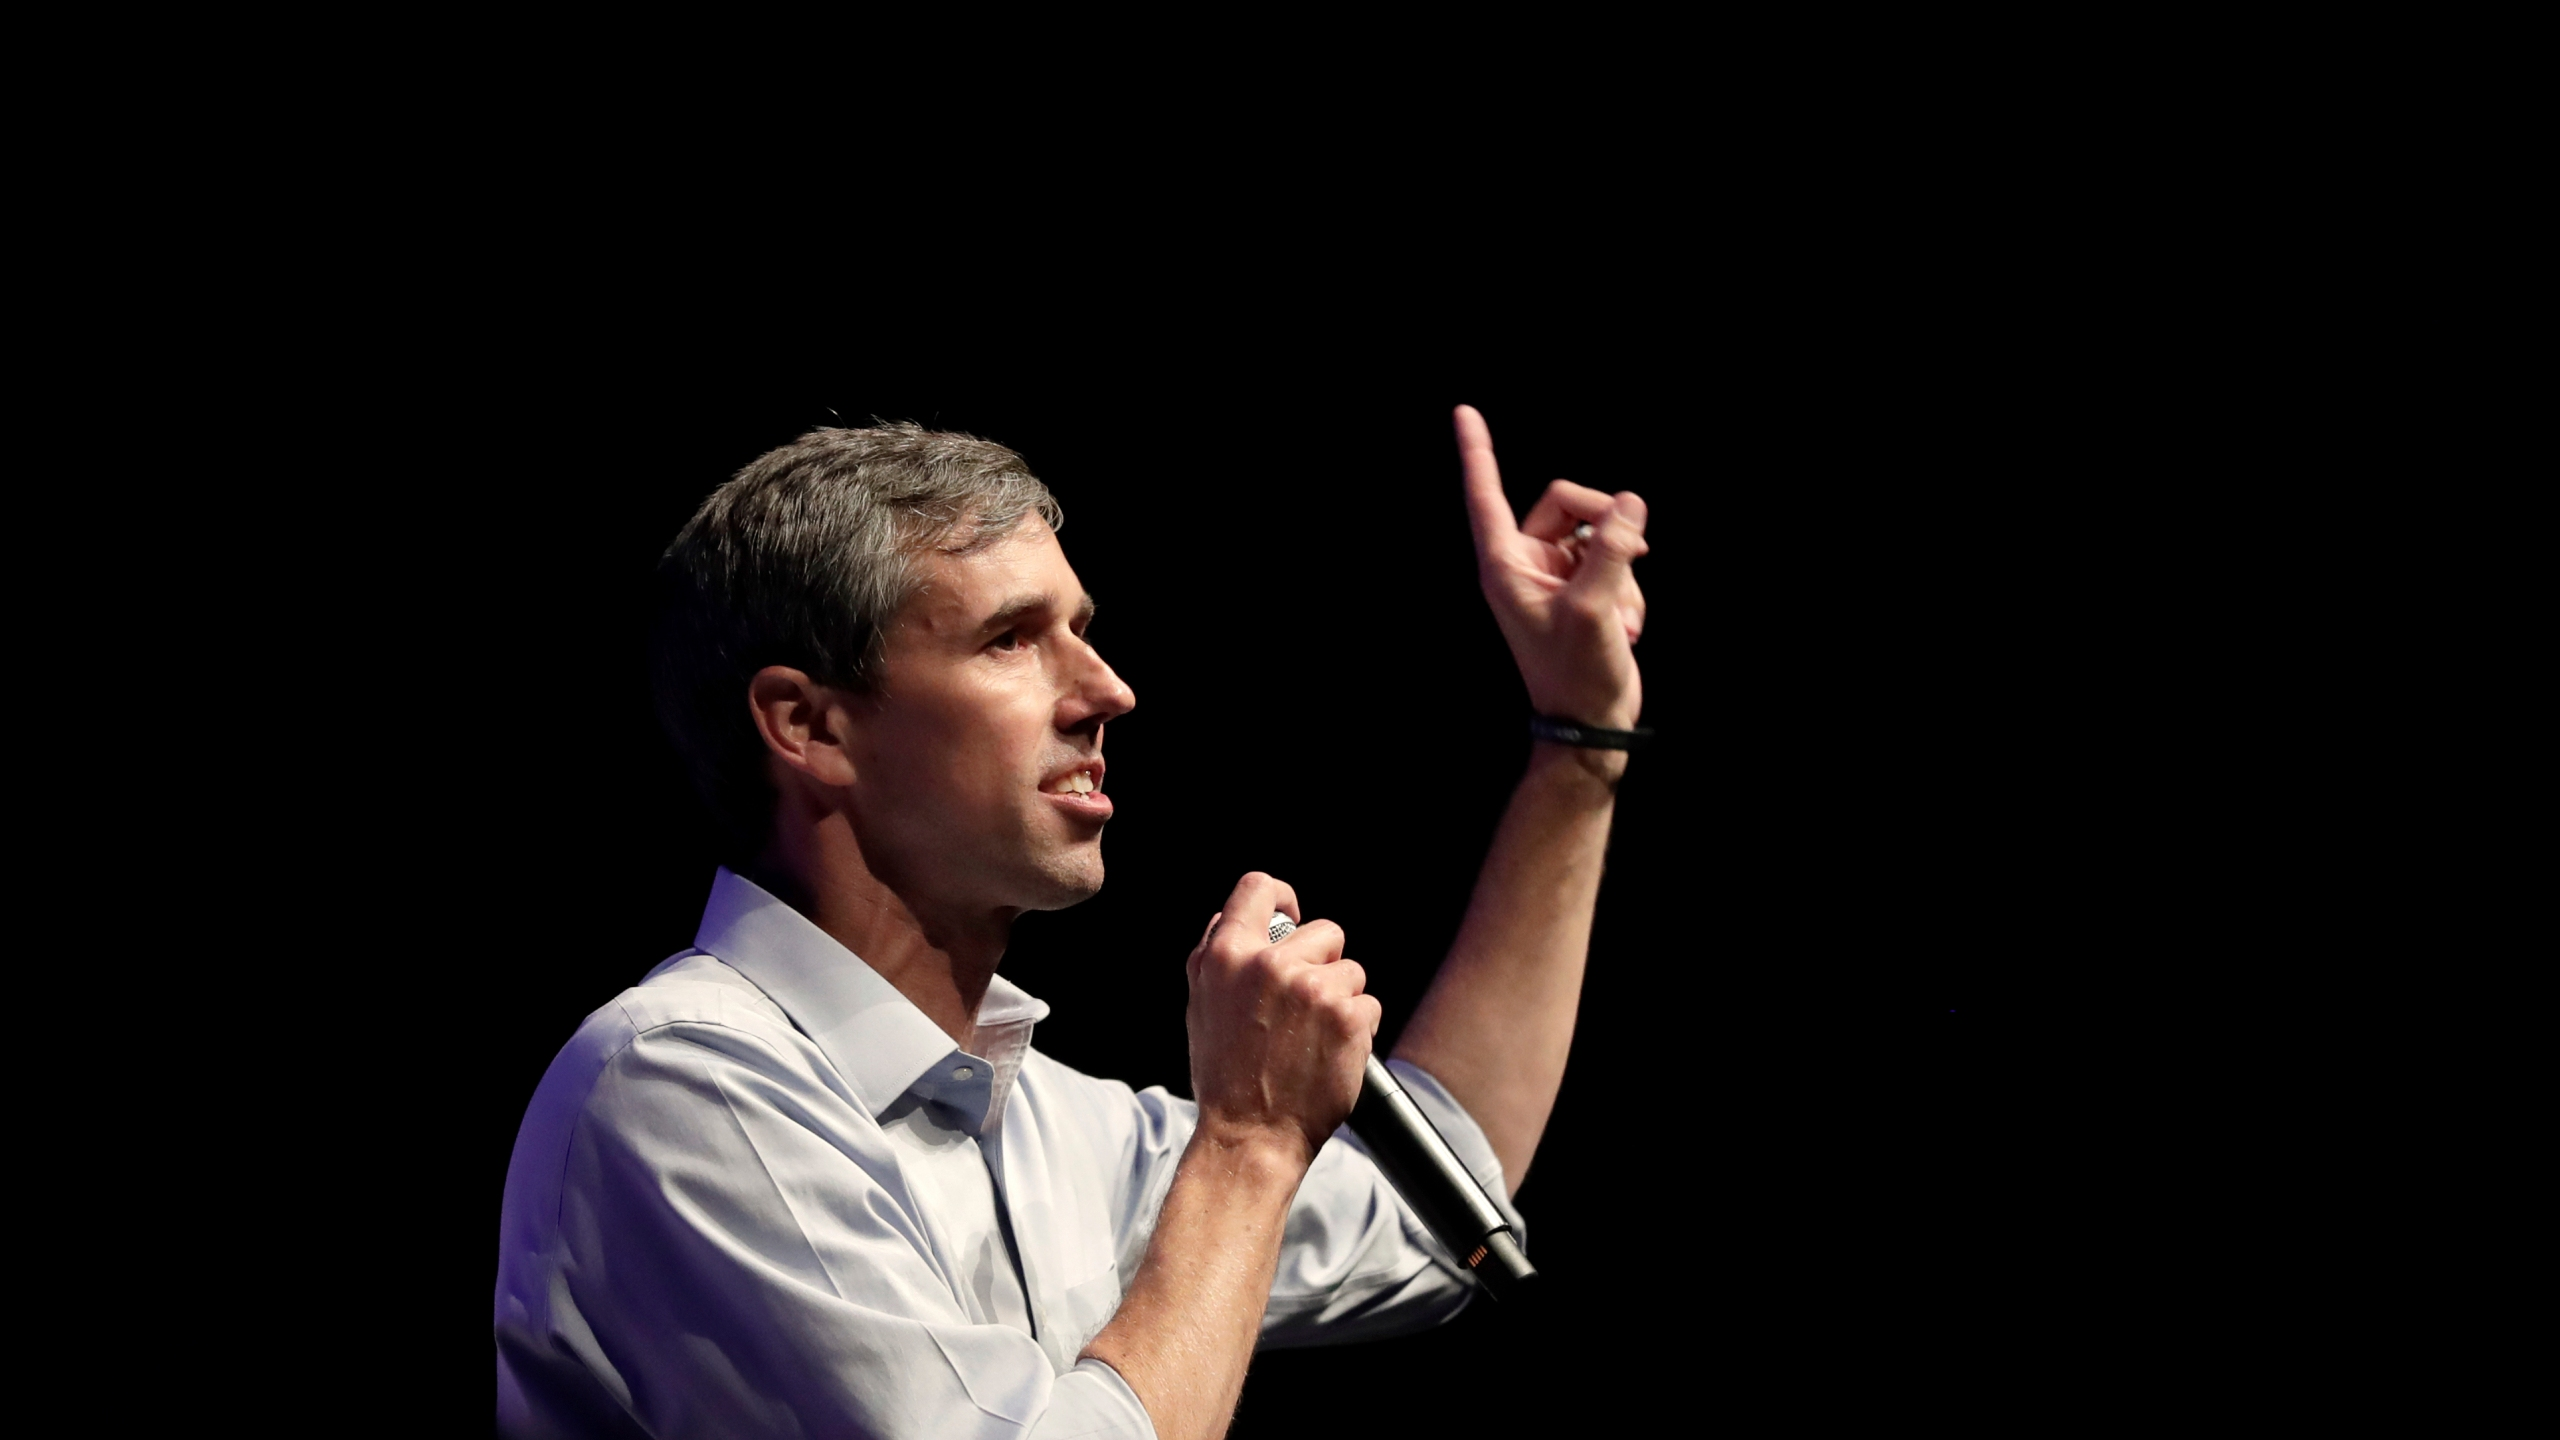 Democratic presidential candidate former Texas Rep. Beto O'Rourke speaks during a campaign rally in Grand Prairie, Texas, Thursday, Oct. 17, 2019. (AP Photo/Tony Gutierrez)